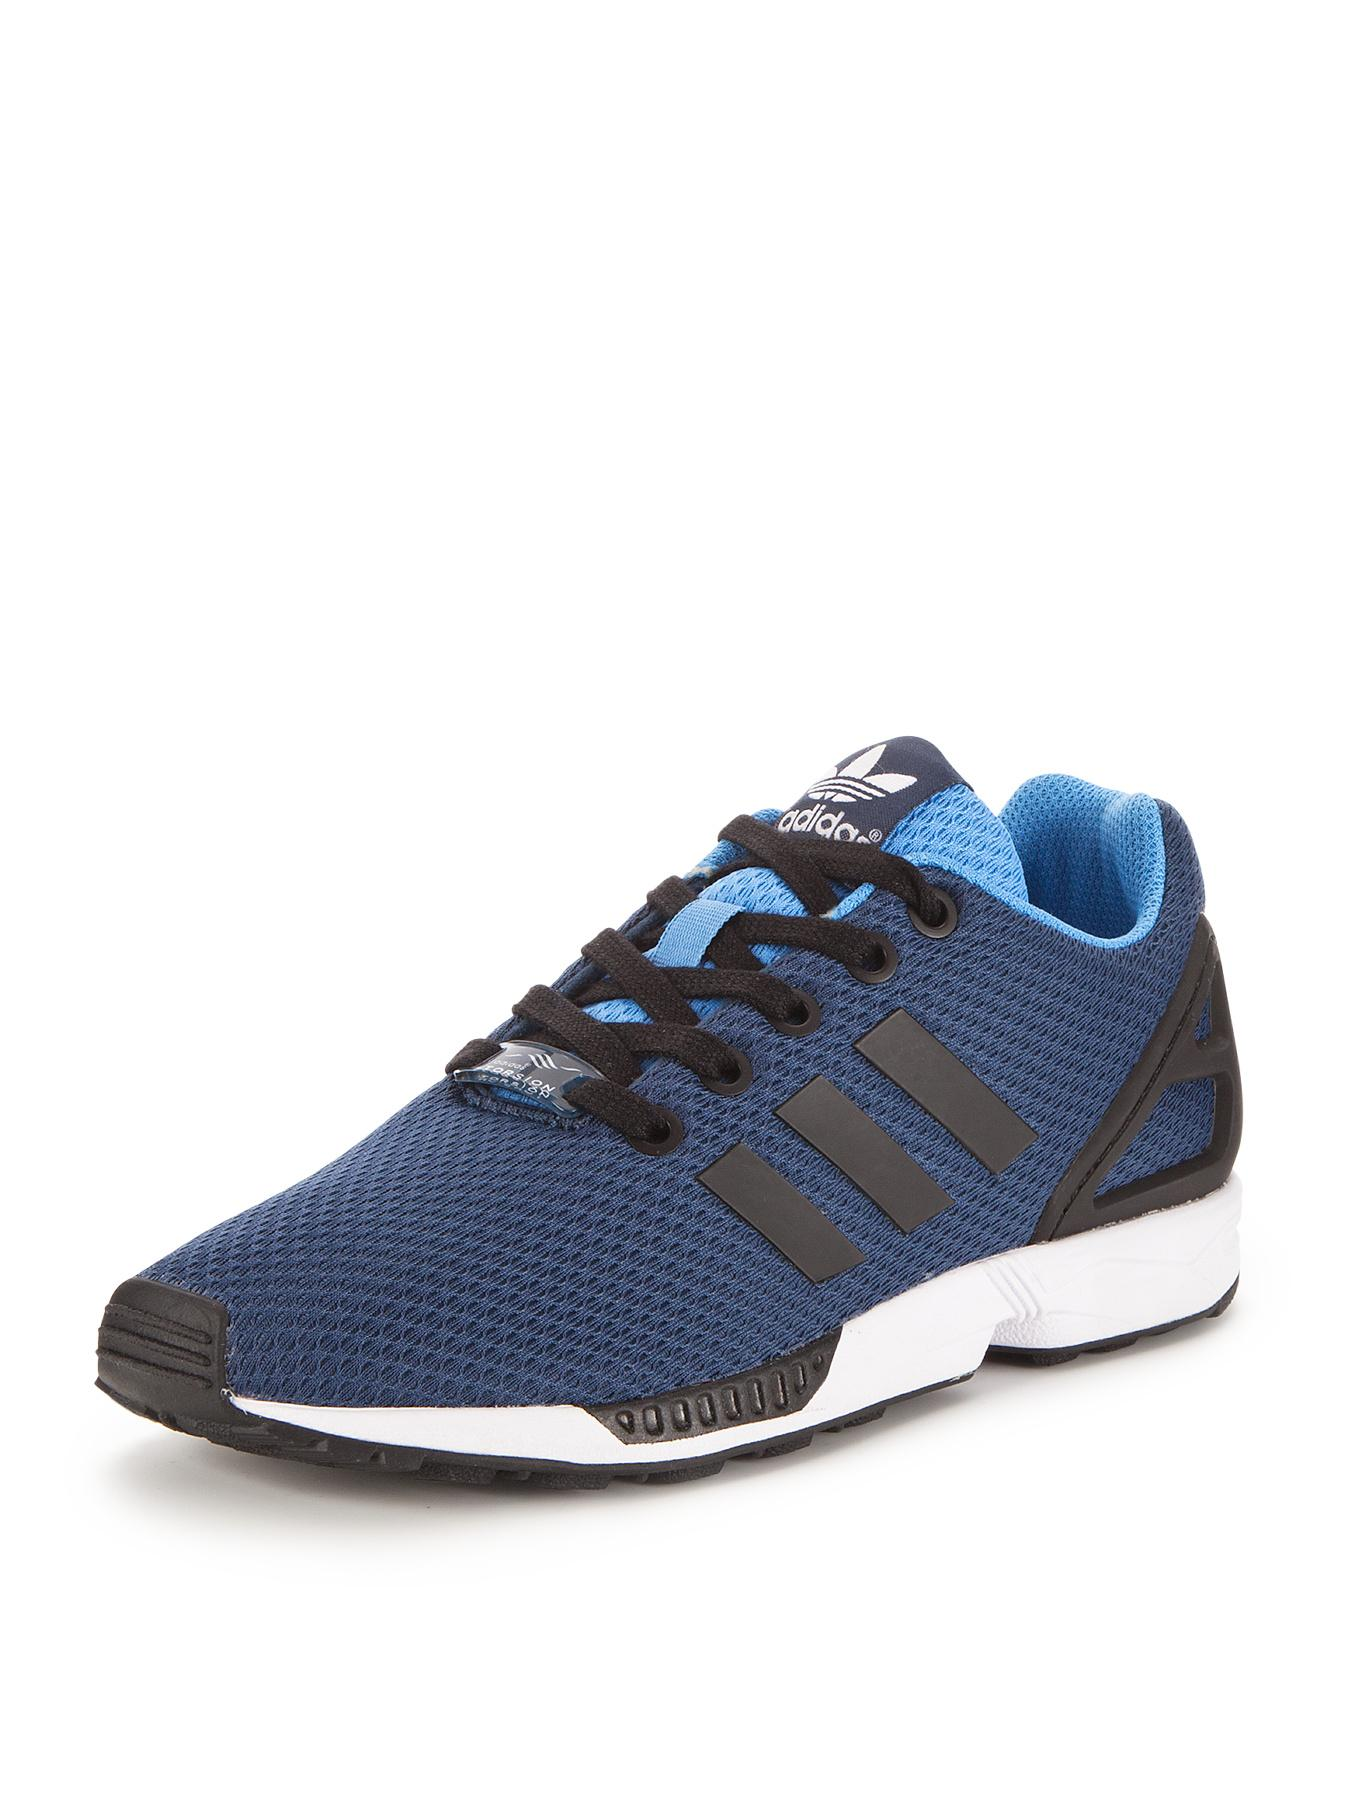 adidas Originals ZX Flux Junior Trainers - Navy, Navy